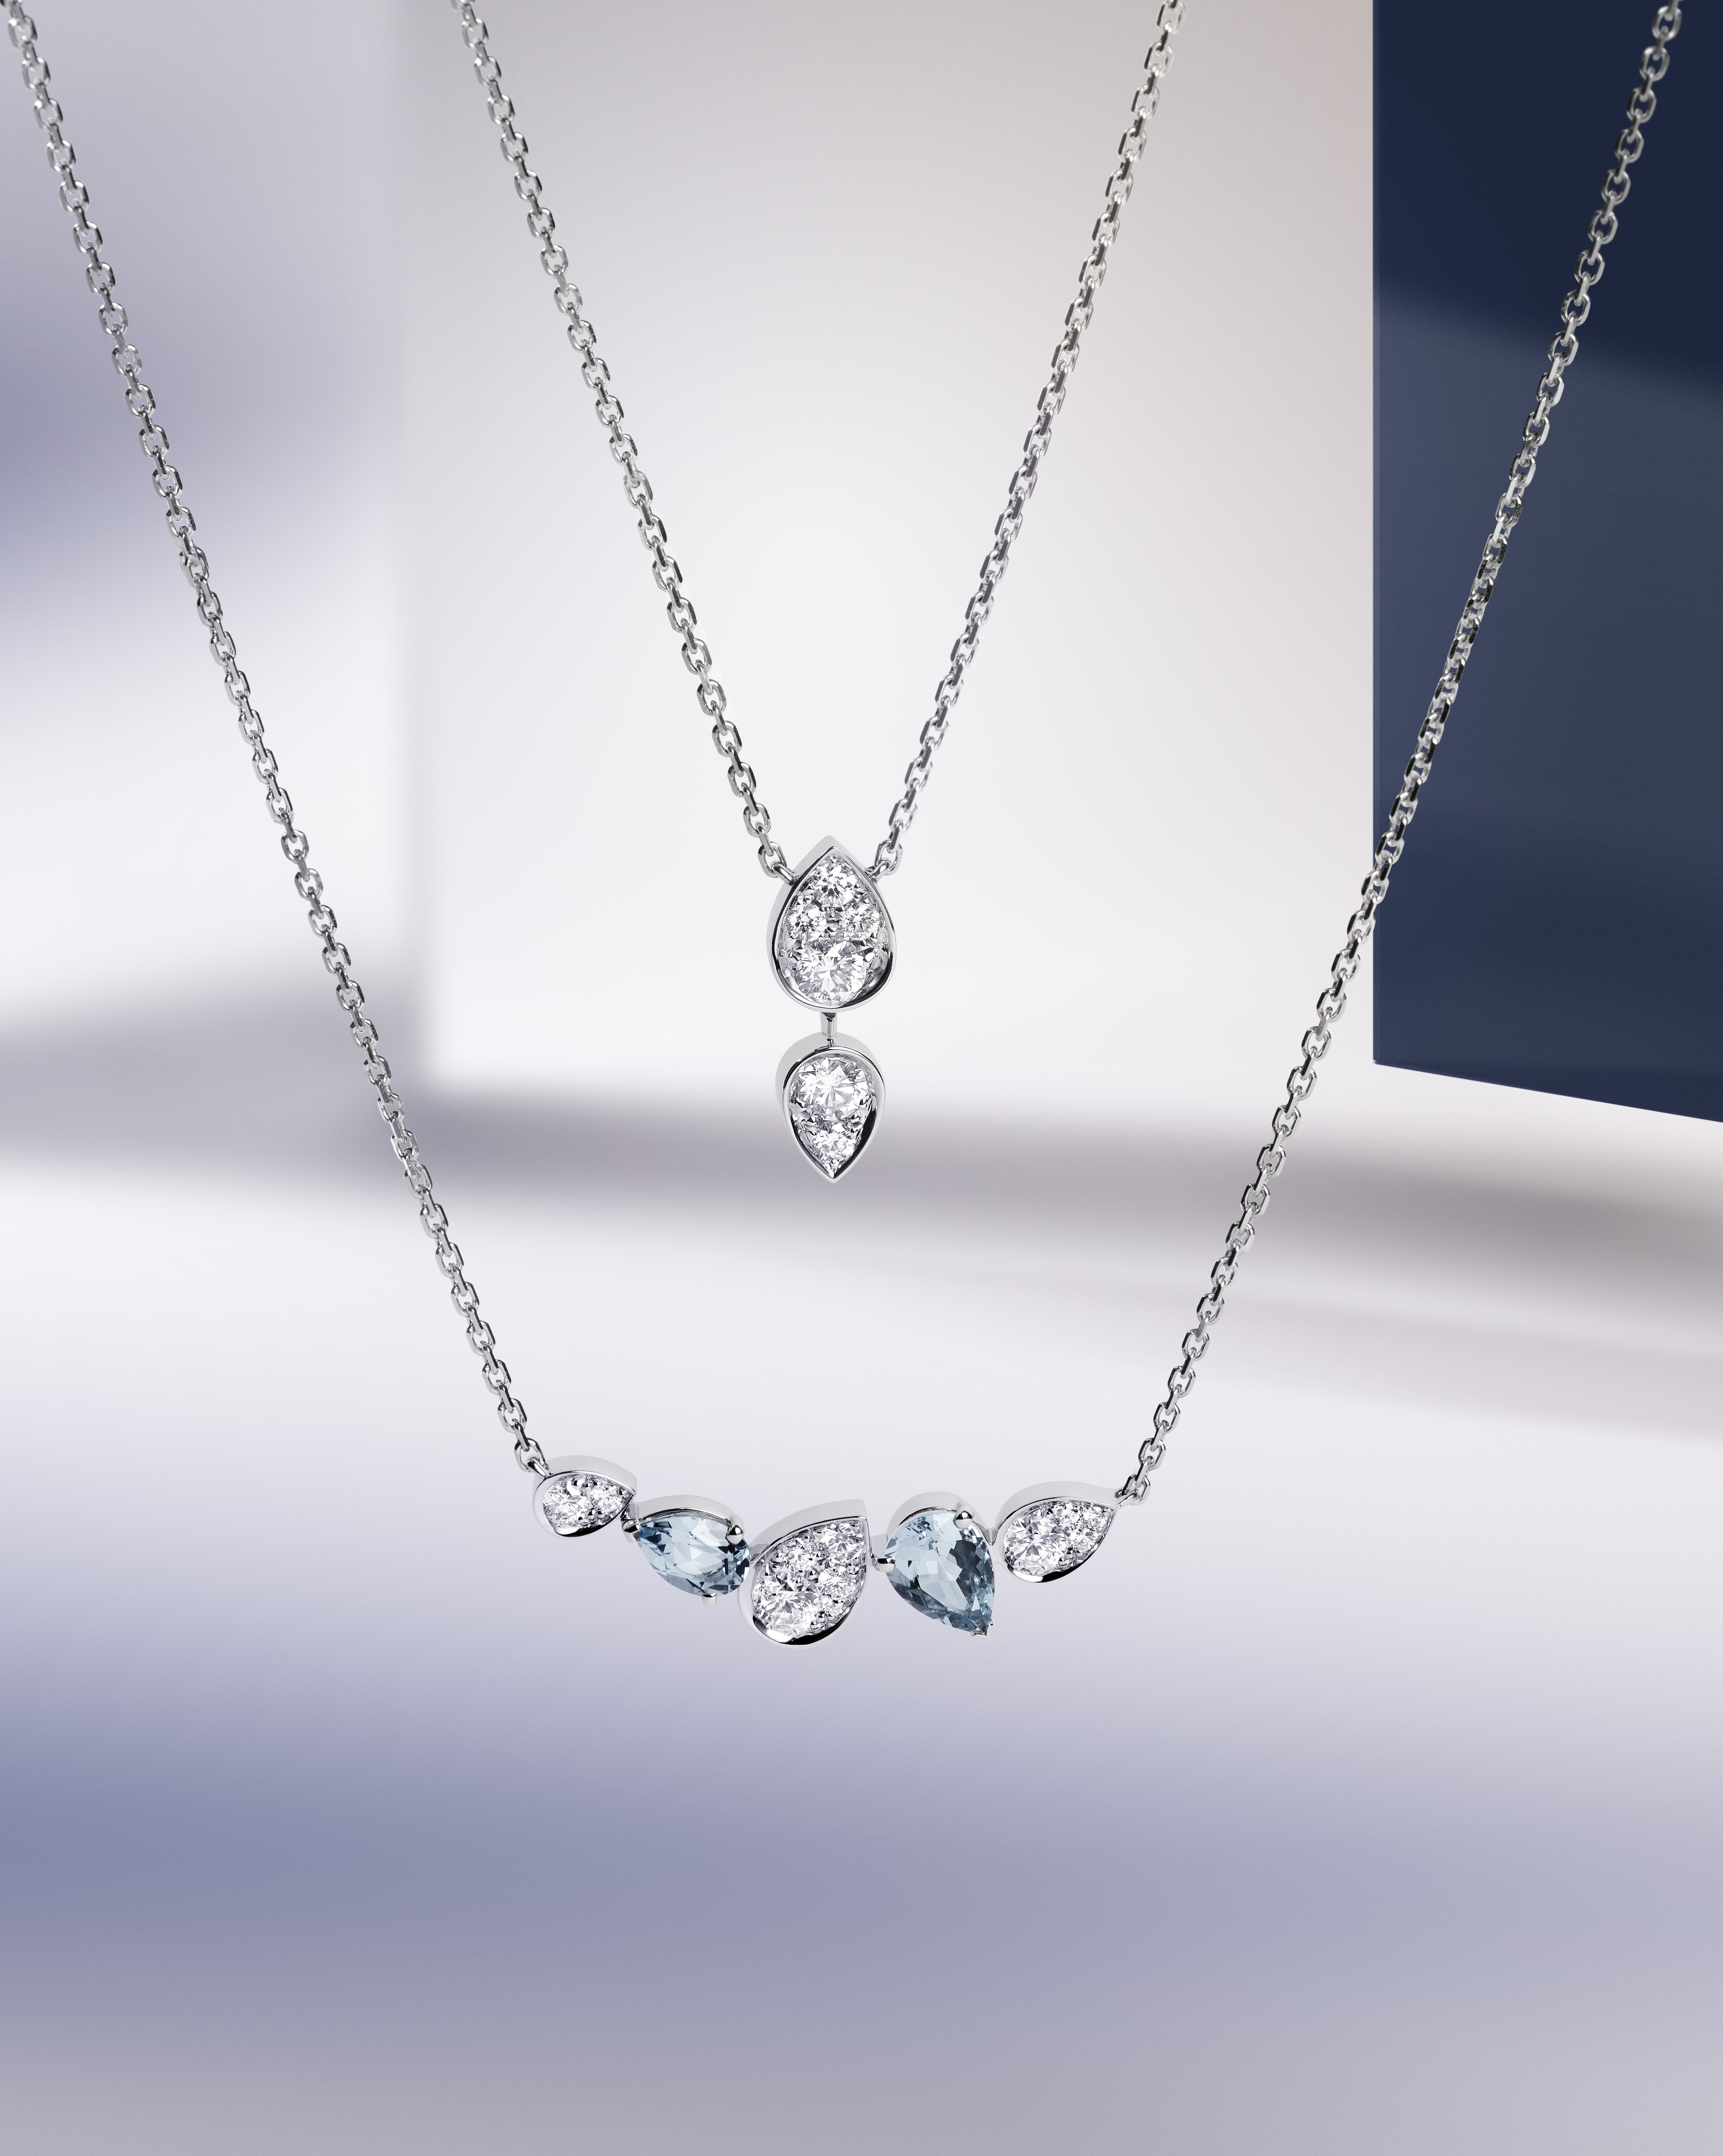 Pendant in white gold with diamonds $33,300 Pendant in white gold with diamonds and Aquamarines $39,100 All from Chaumet Joséphine Ronde d'Aigrettes collection